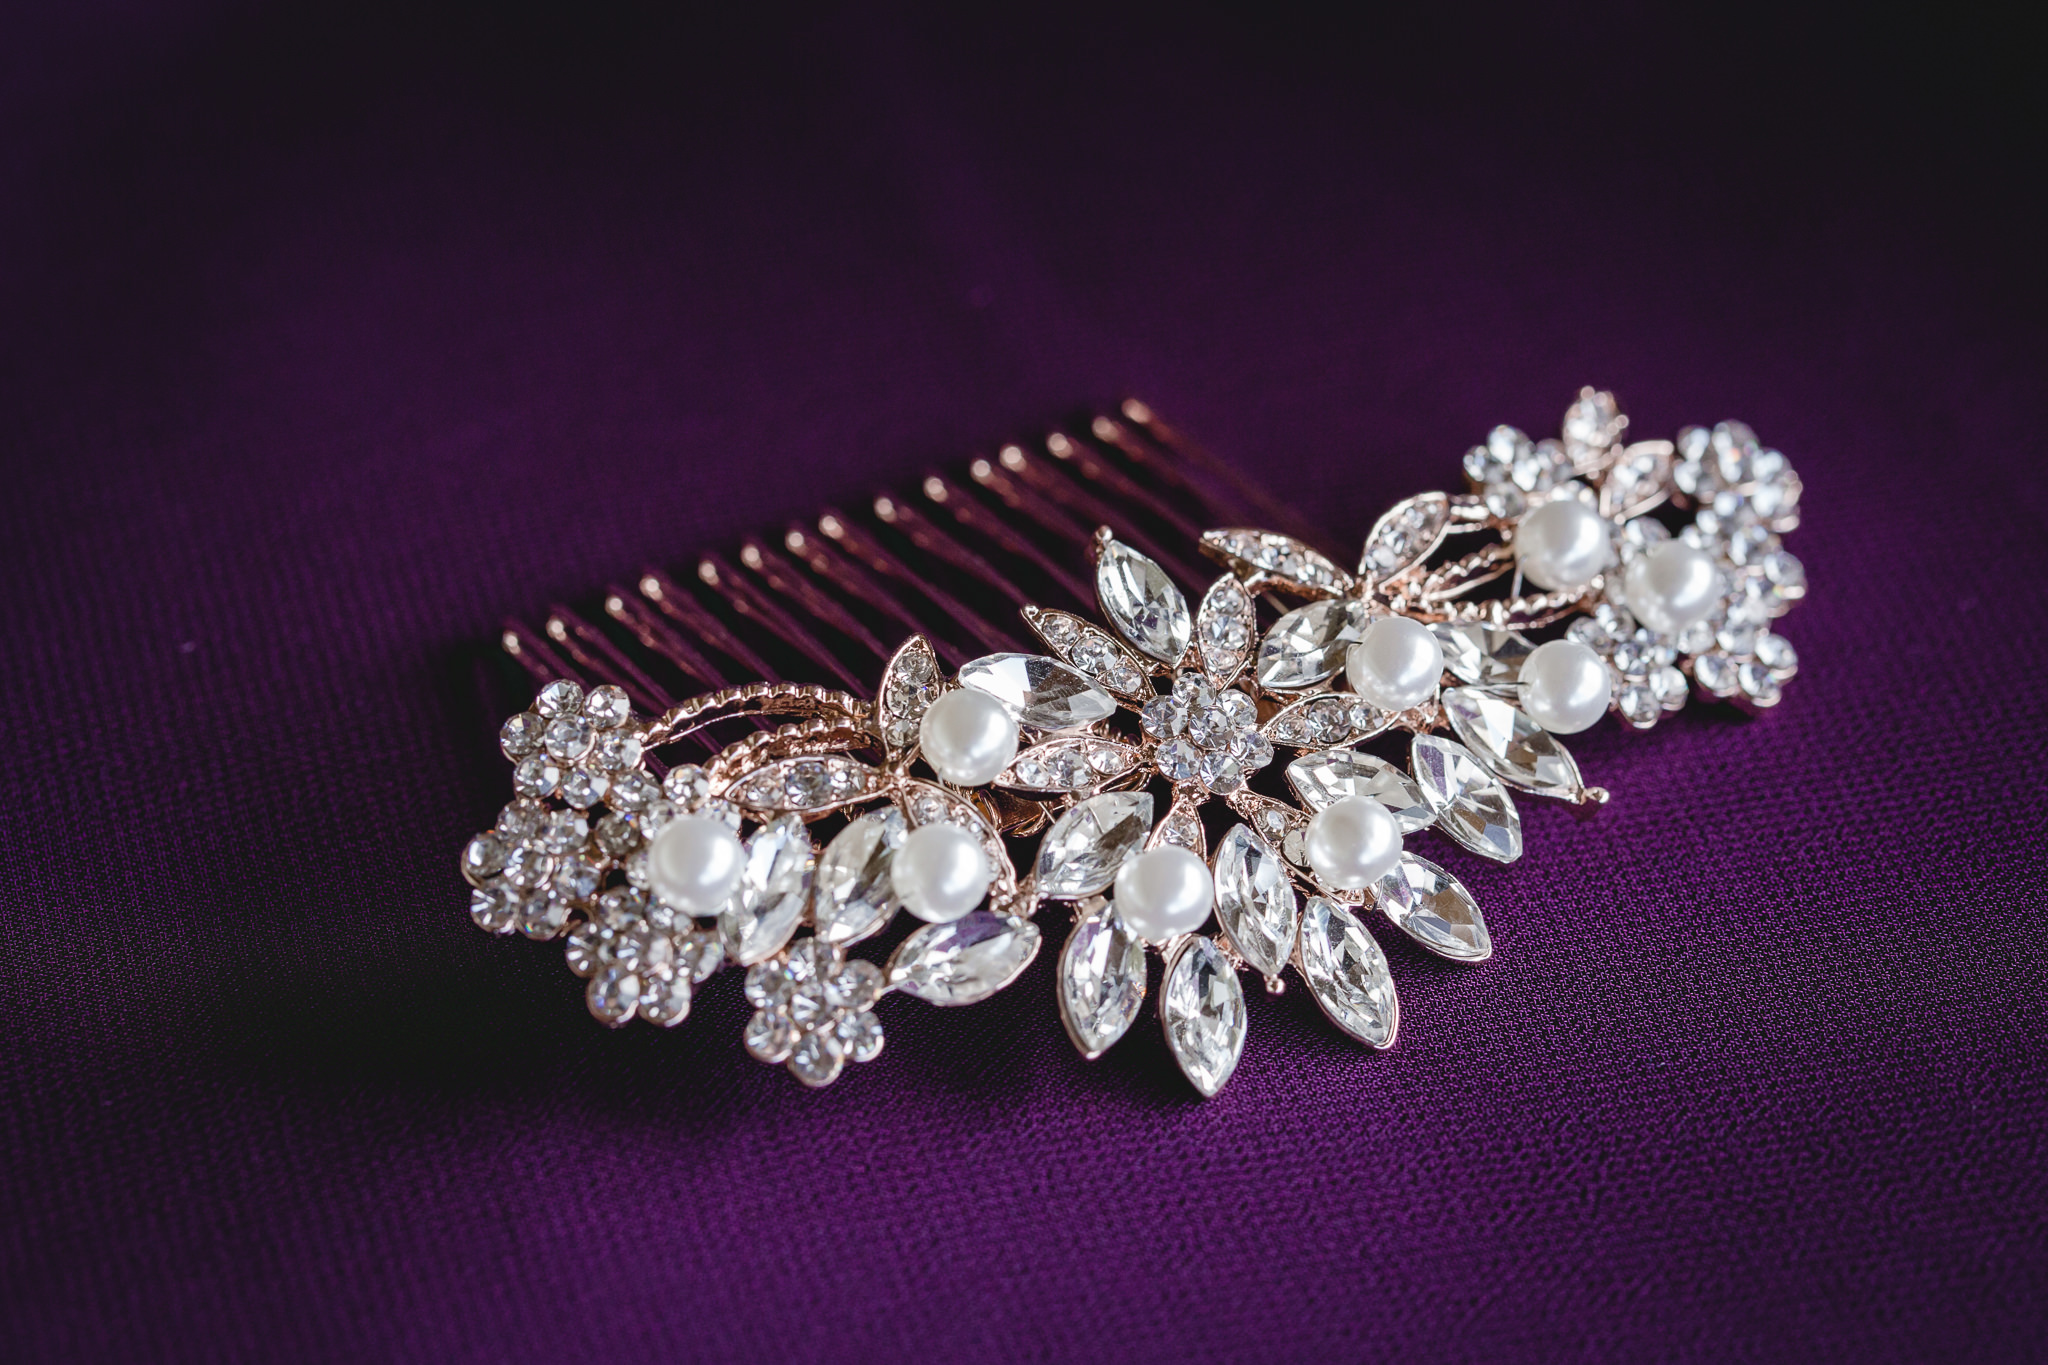 Diamond and rose gold hair clip on a purple bridesmaids dress